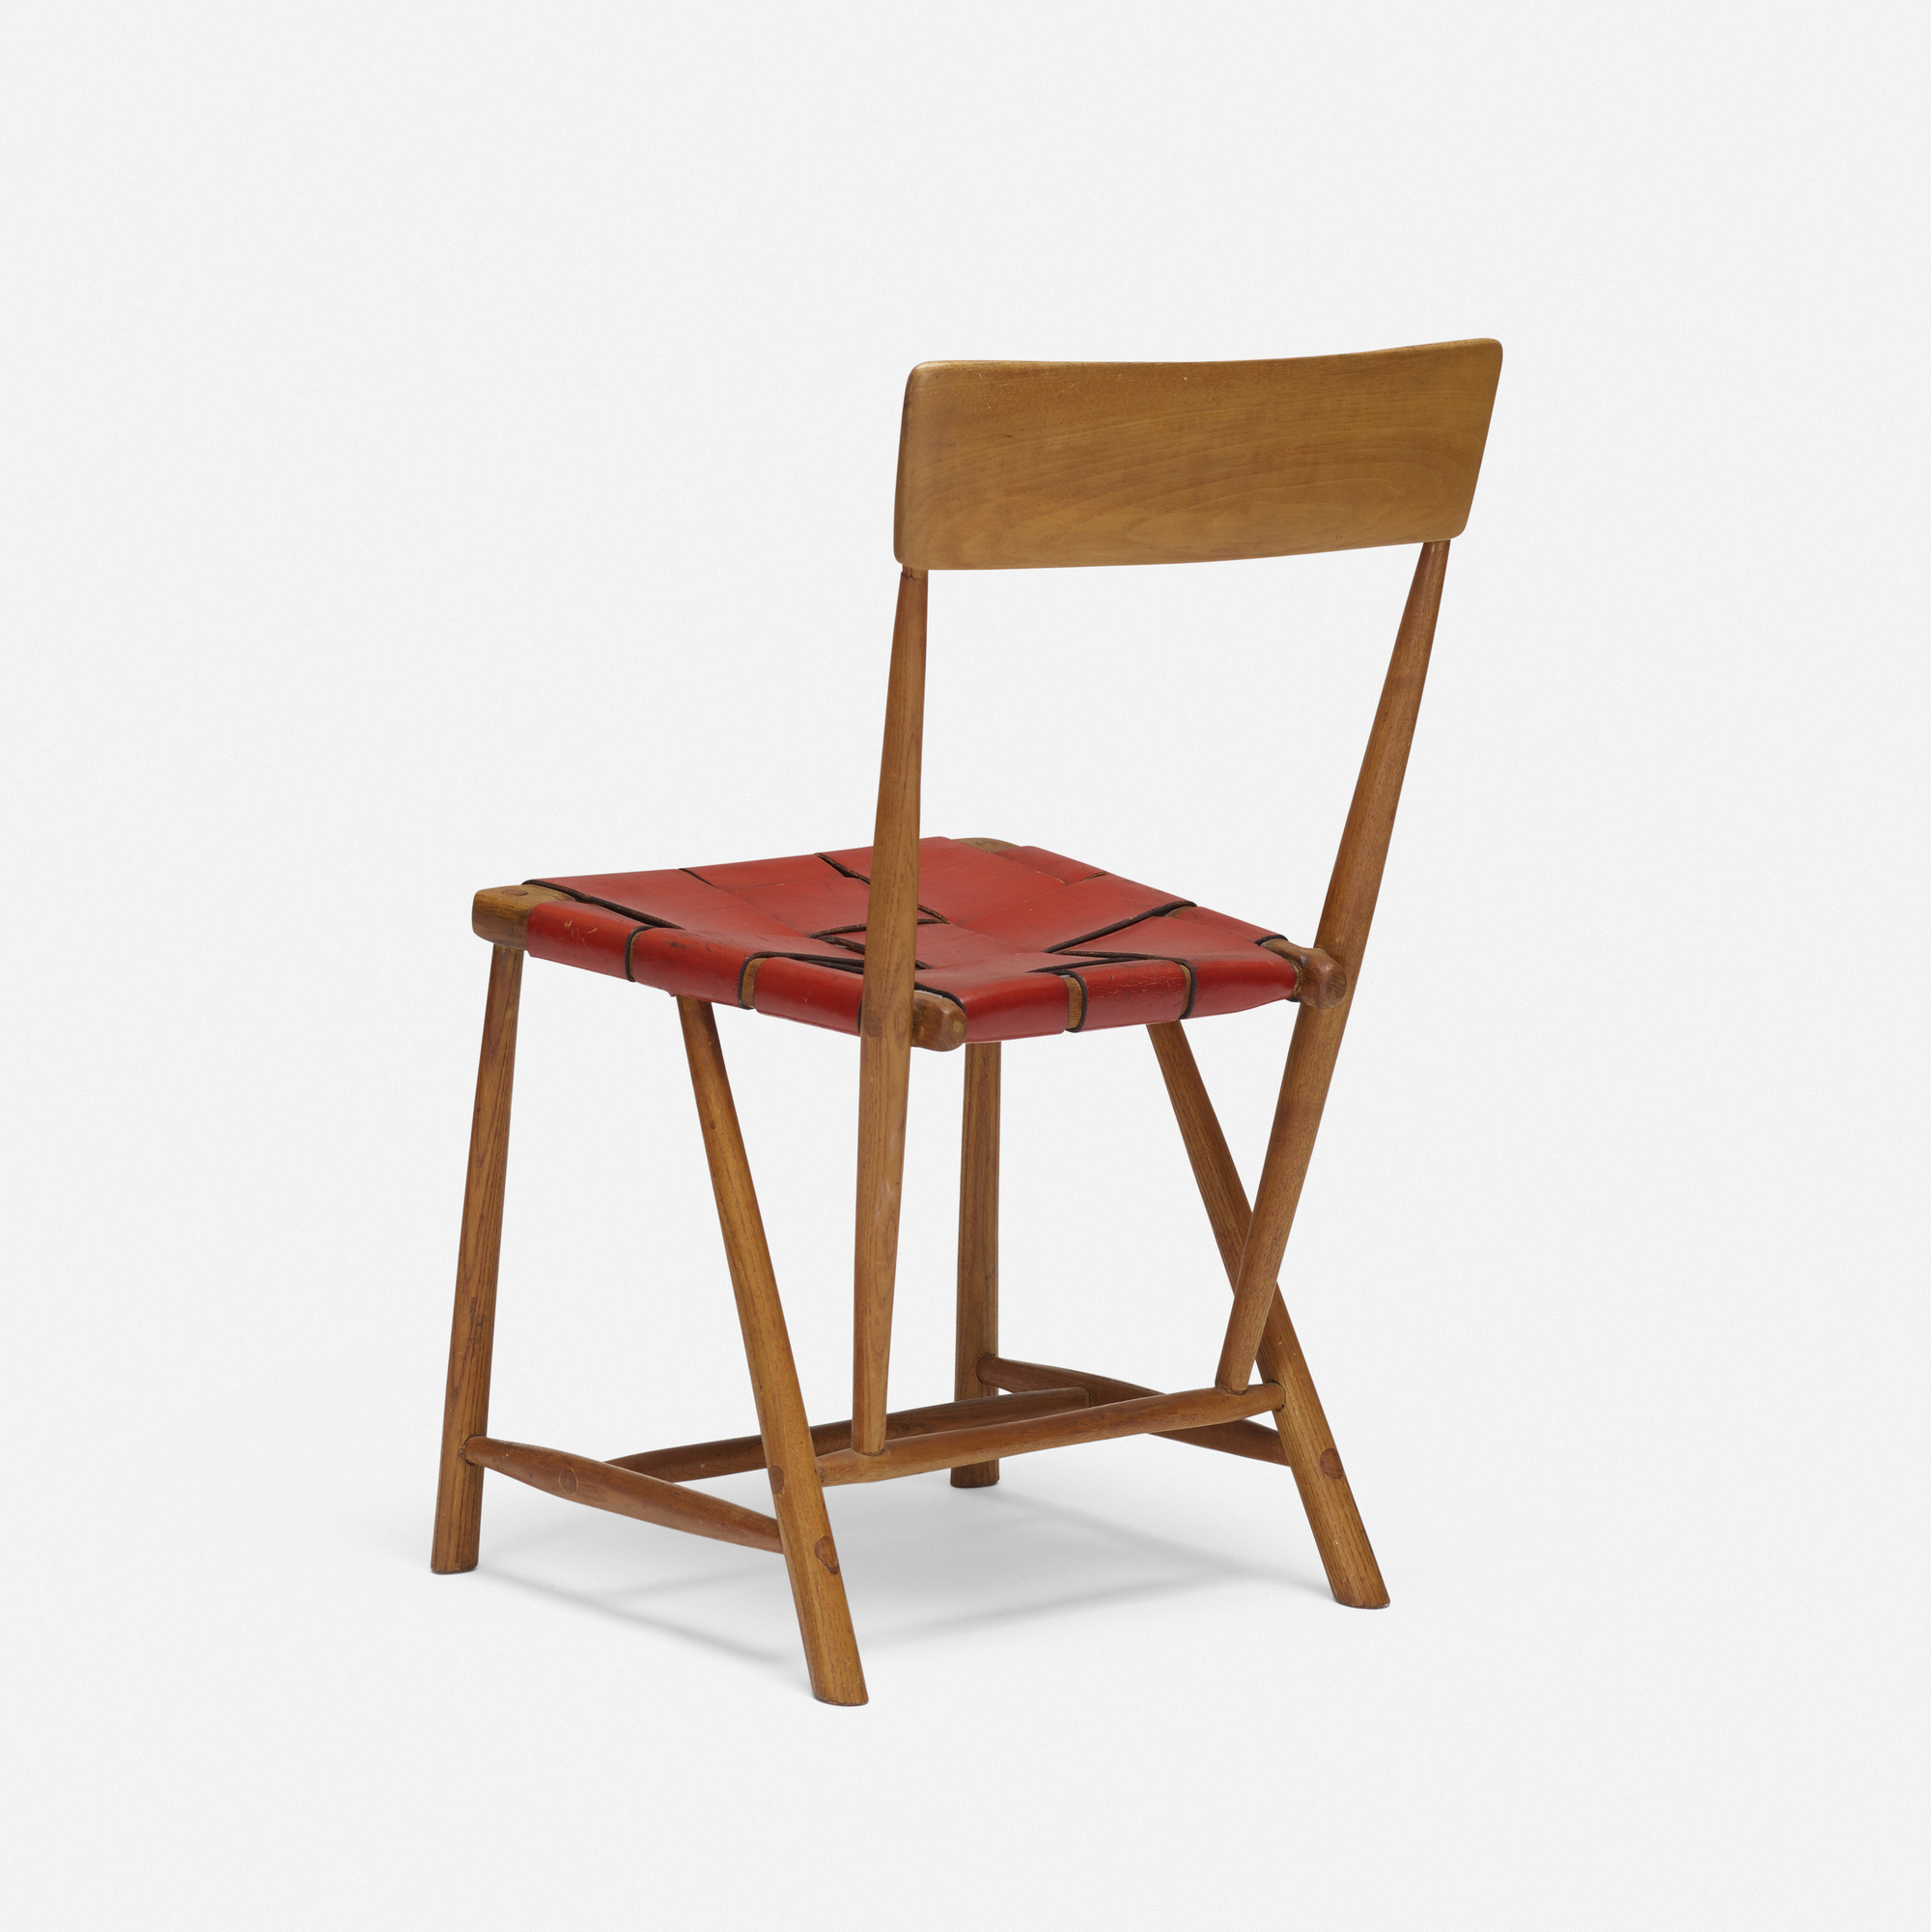 chair design with handle dental 130 wharton esherick hammer 23 march 2017 2 of 3